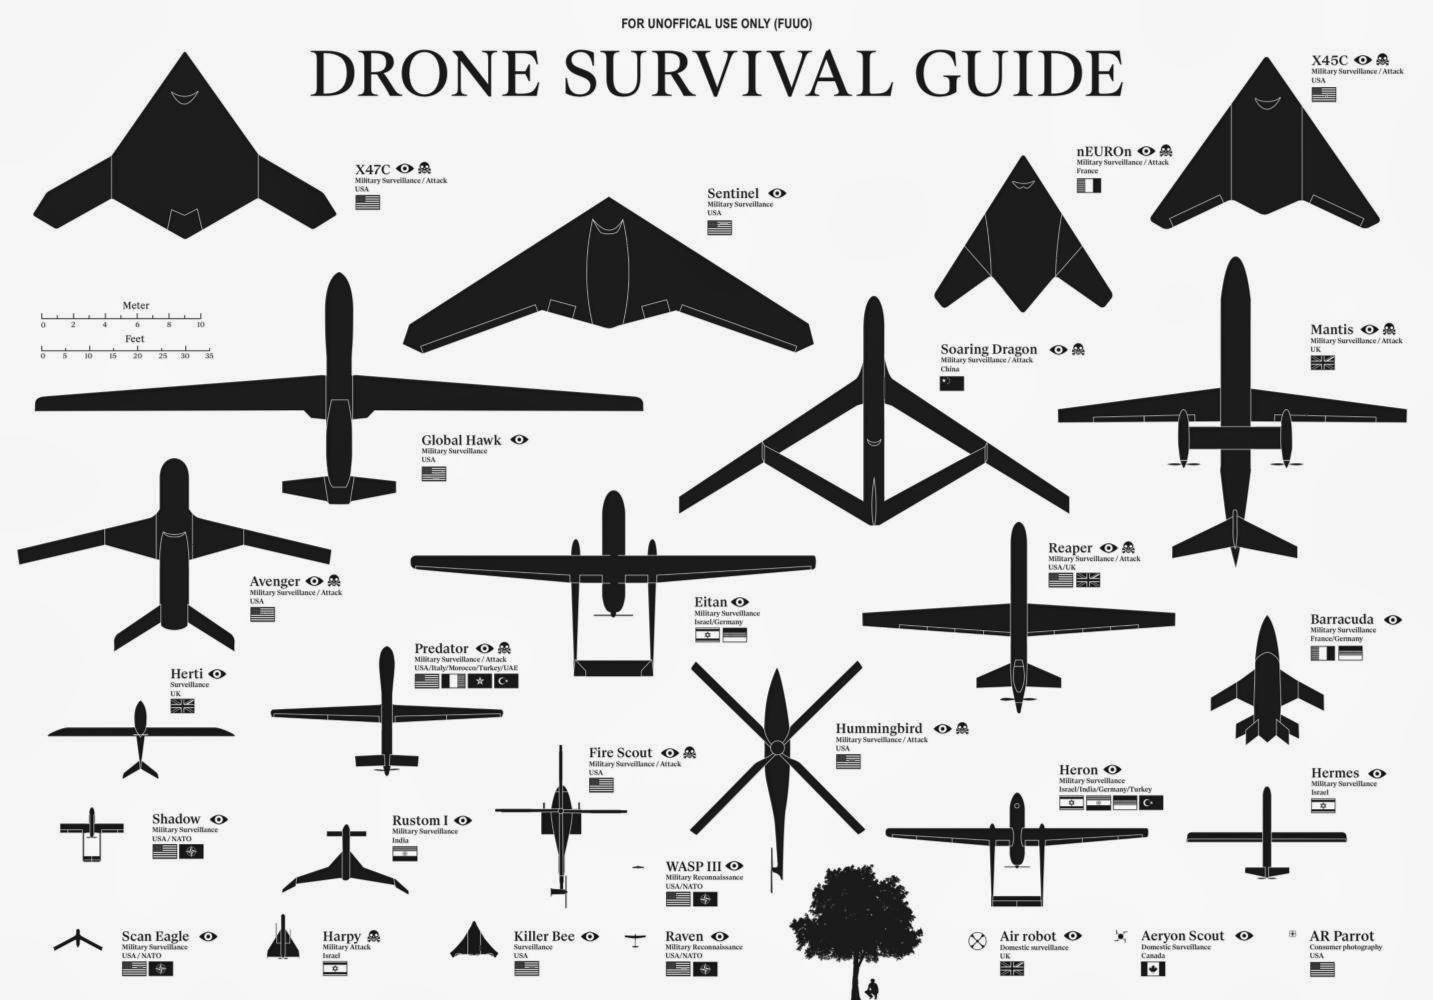 War News Updates: How To Survive A Drone Attack